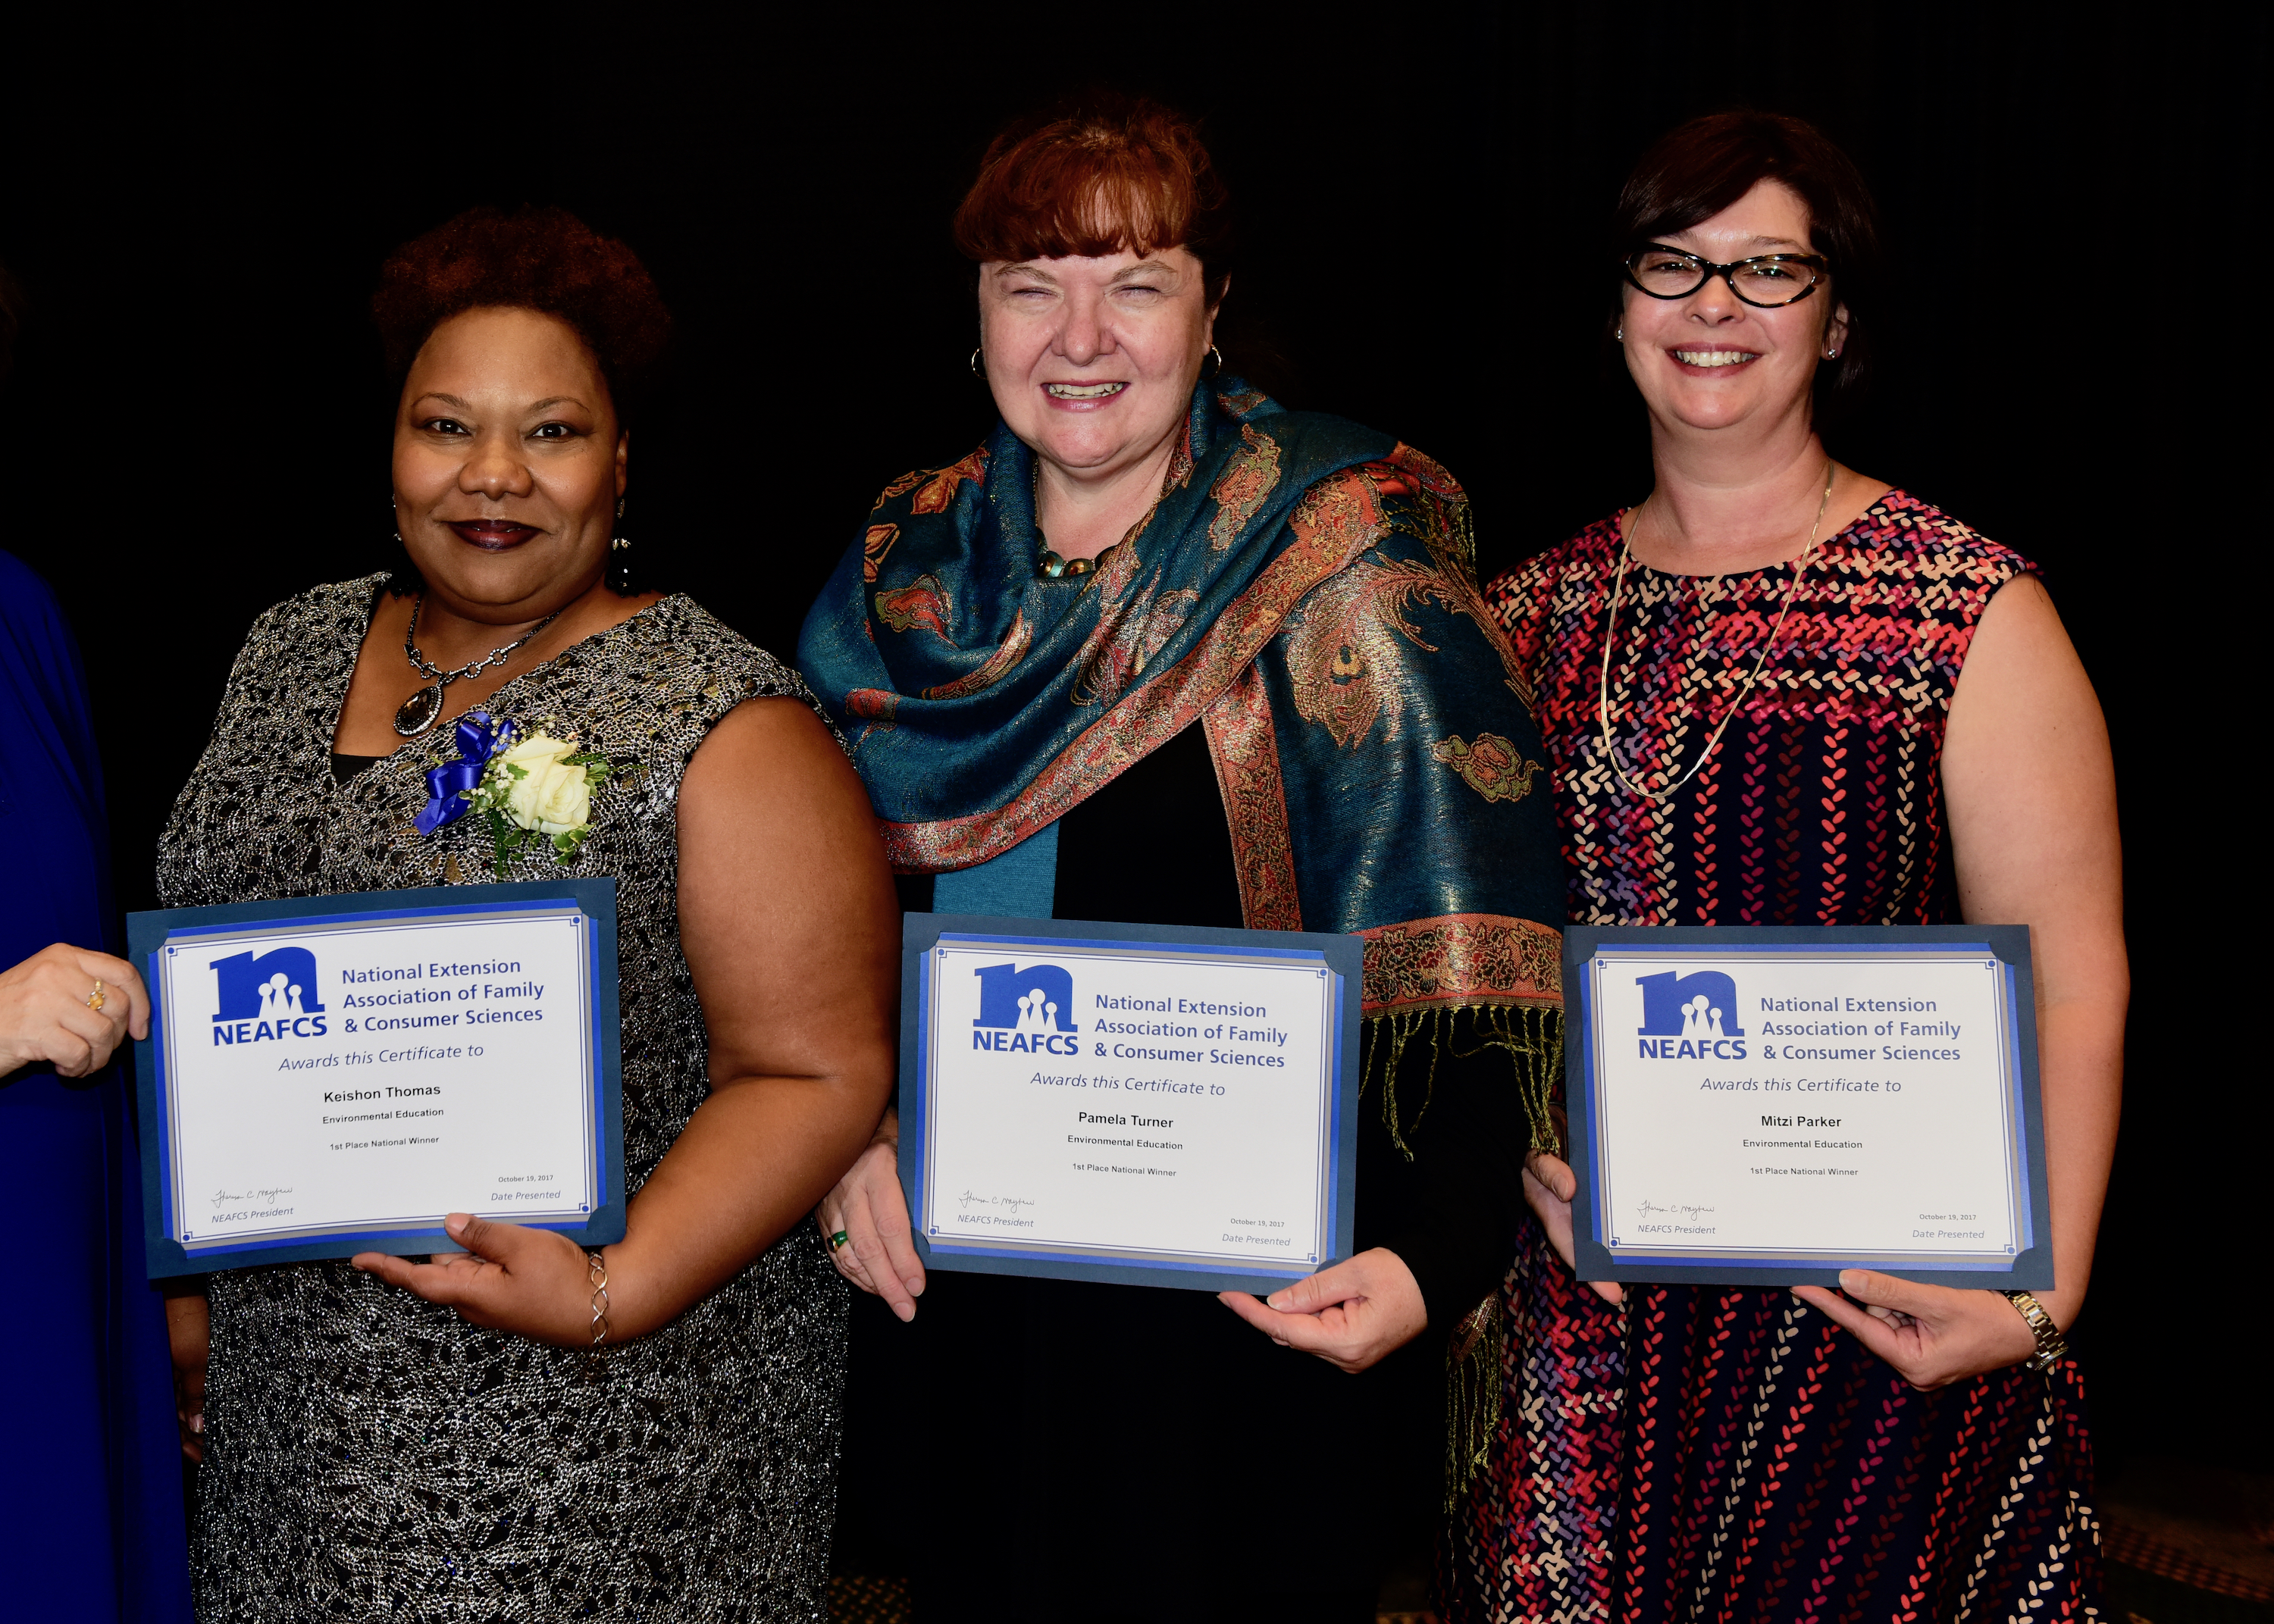 Keishon Thomas, Pamela Turner and Mitzi Parker were recently honored at the National Extension Association of Family and Consumer Sciences 2017 Annual Session, where they received the first place National and Southern Region Environmental Education Award. Since 2013, the Rural Georgia Healthy Housing Advisory Board has promoted healthier and safer housing conditions in Georgia, particularly for low-income residents, children, elderly, minorities and other vulnerable populations living in rural communities.